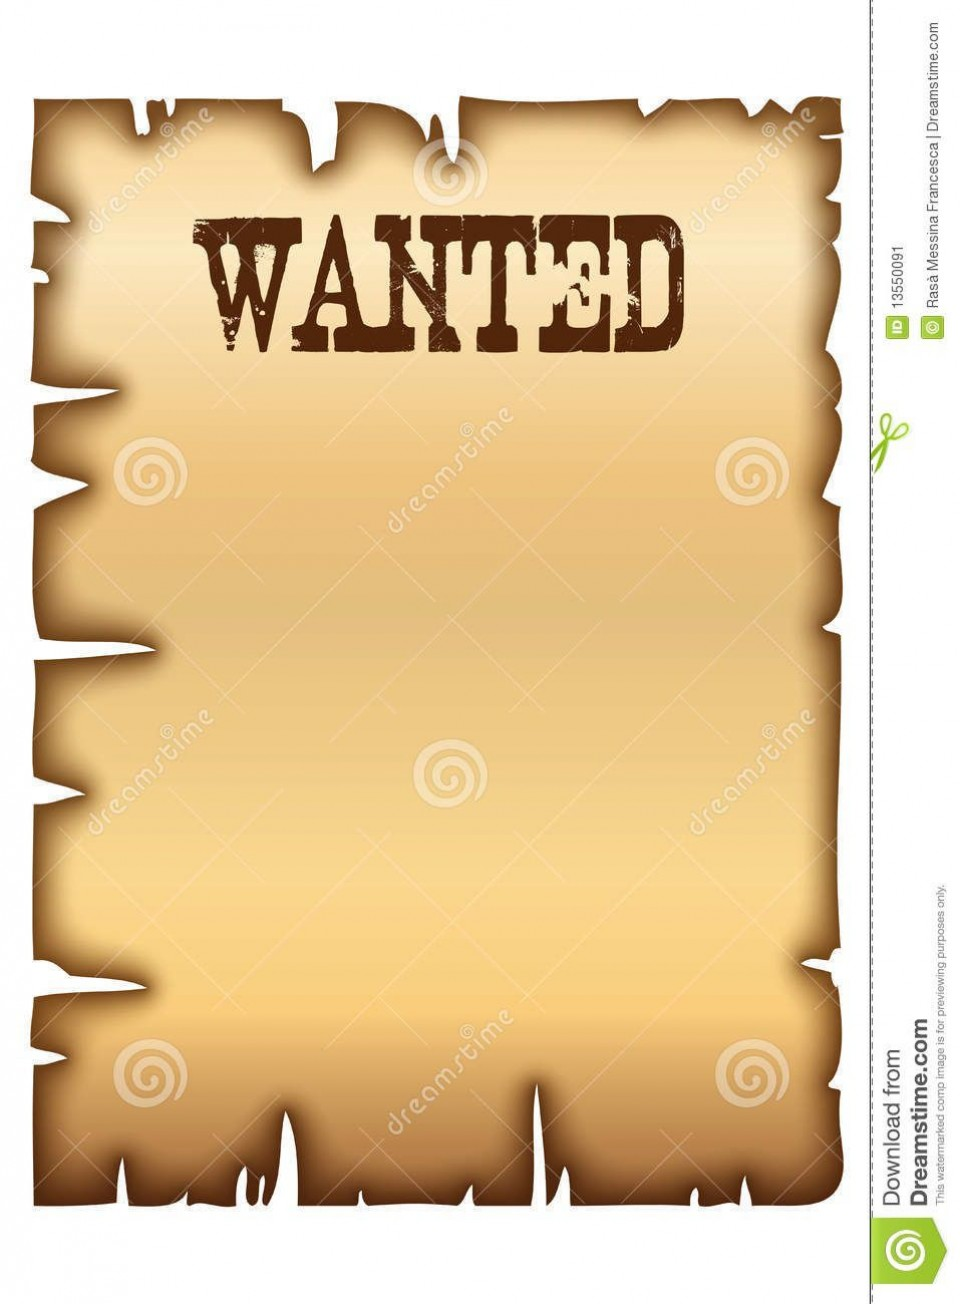 004 Wonderful Wanted Poster Template Microsoft Word High Definition  Western Most960